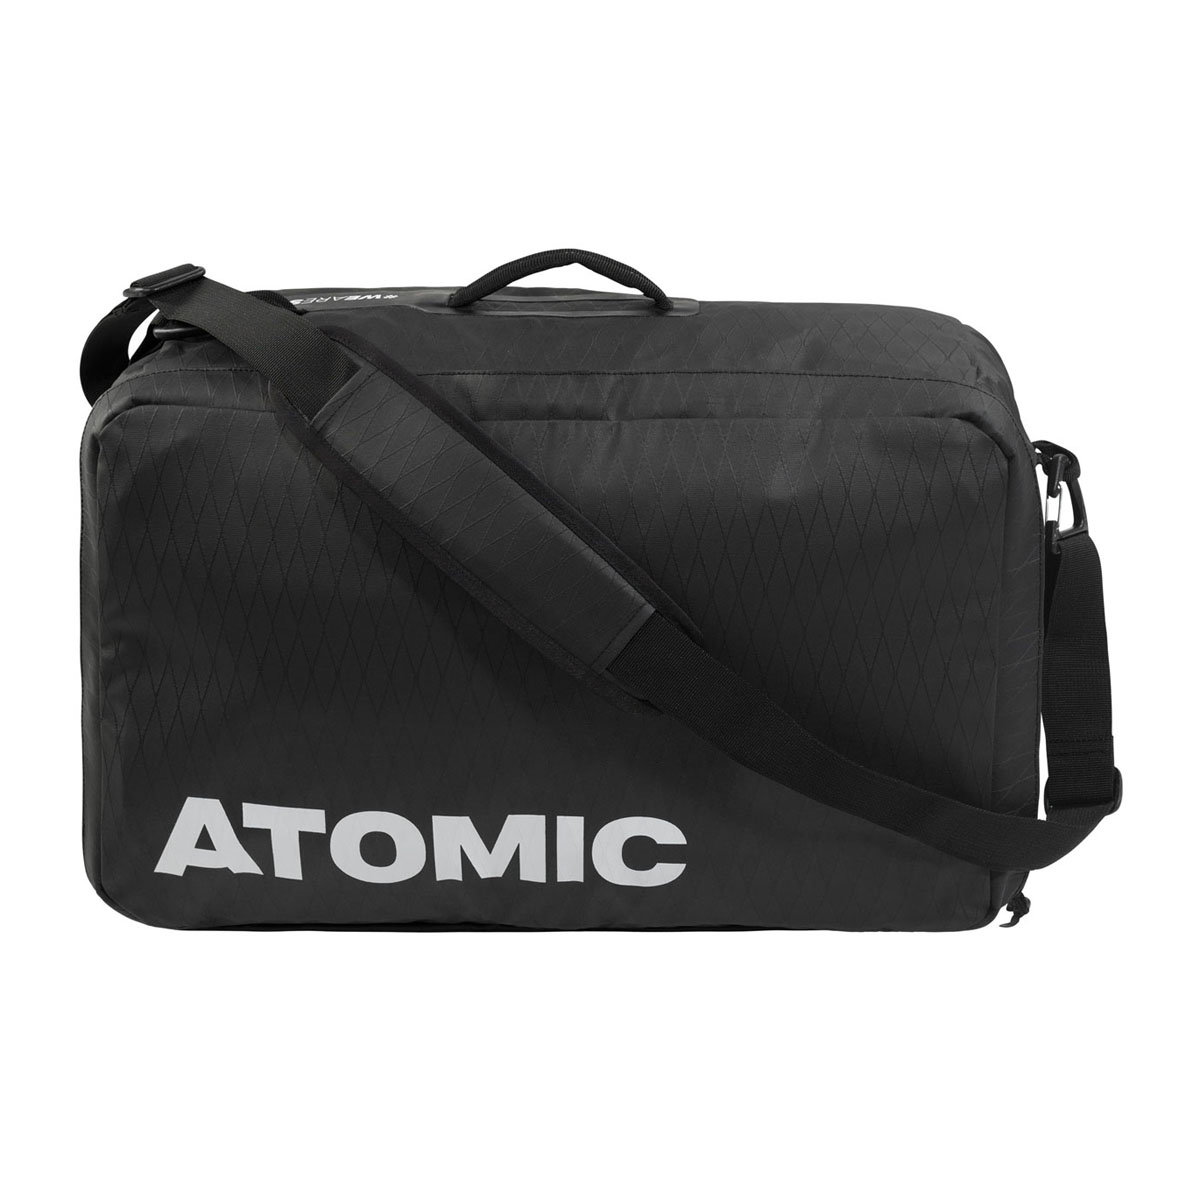 Atomic DUFFLE BAG 40L